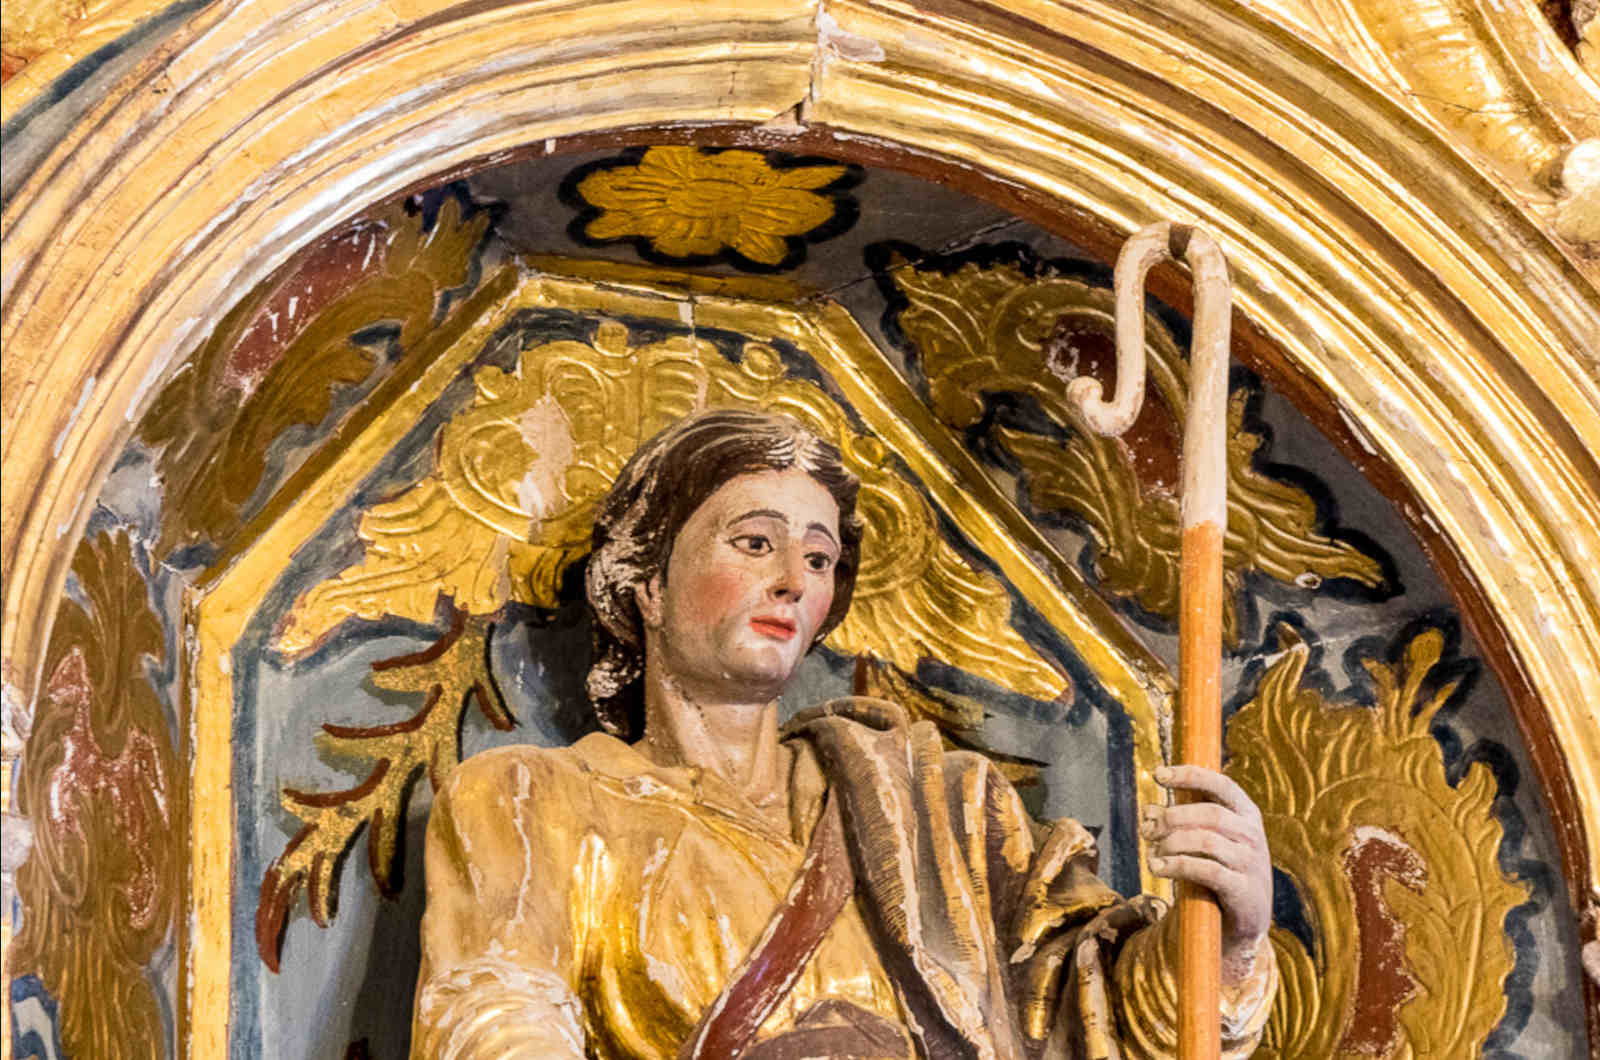 A close up of the painted wood carving of the shepherd San Urbez in the chapel at Albella on our Cultural Holiday Spain